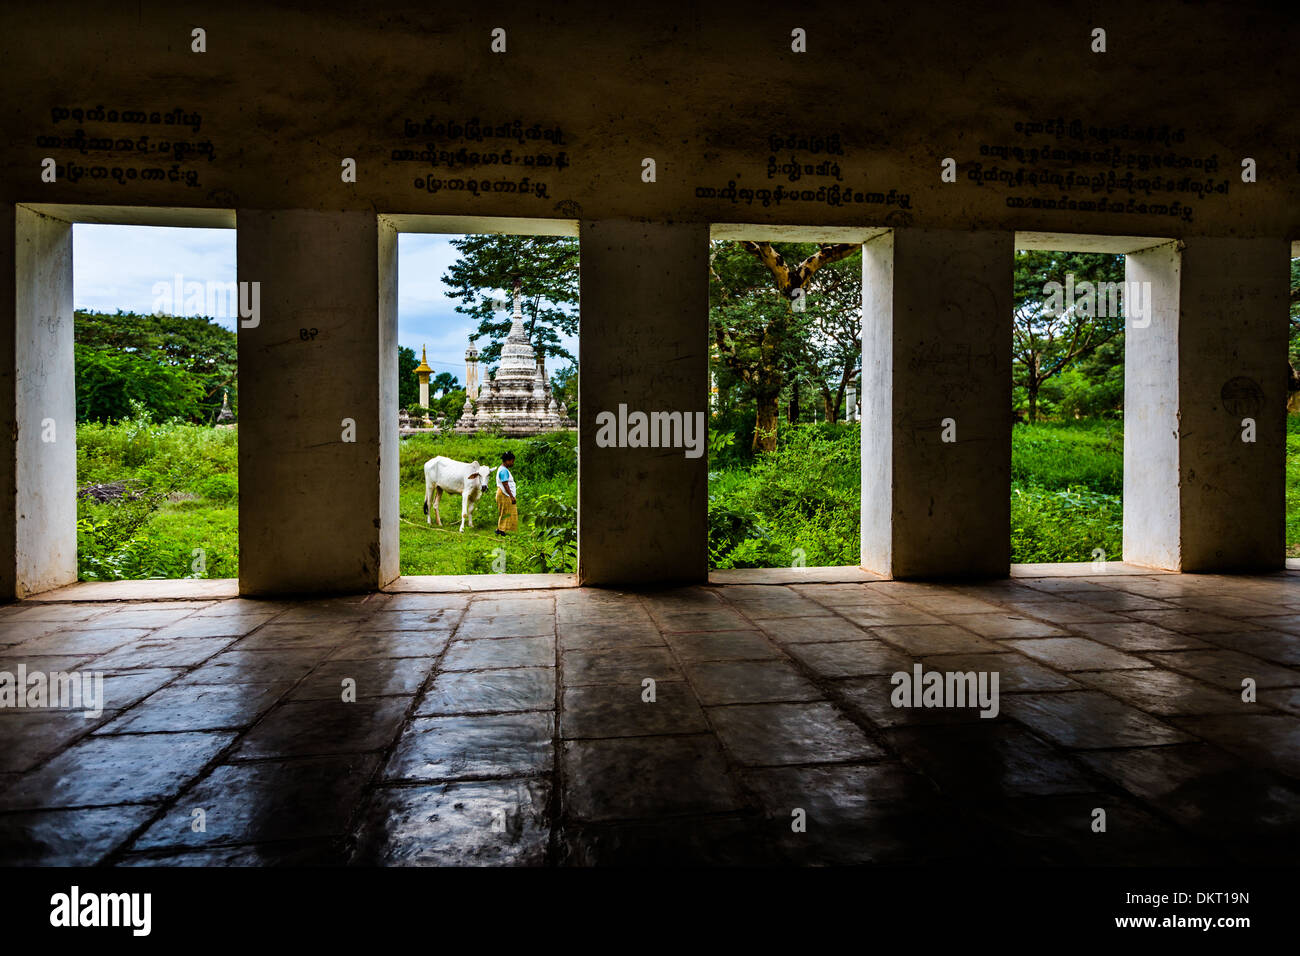 A view out from Shwezigon pagoda in Bagan, Myanar Stock Photo